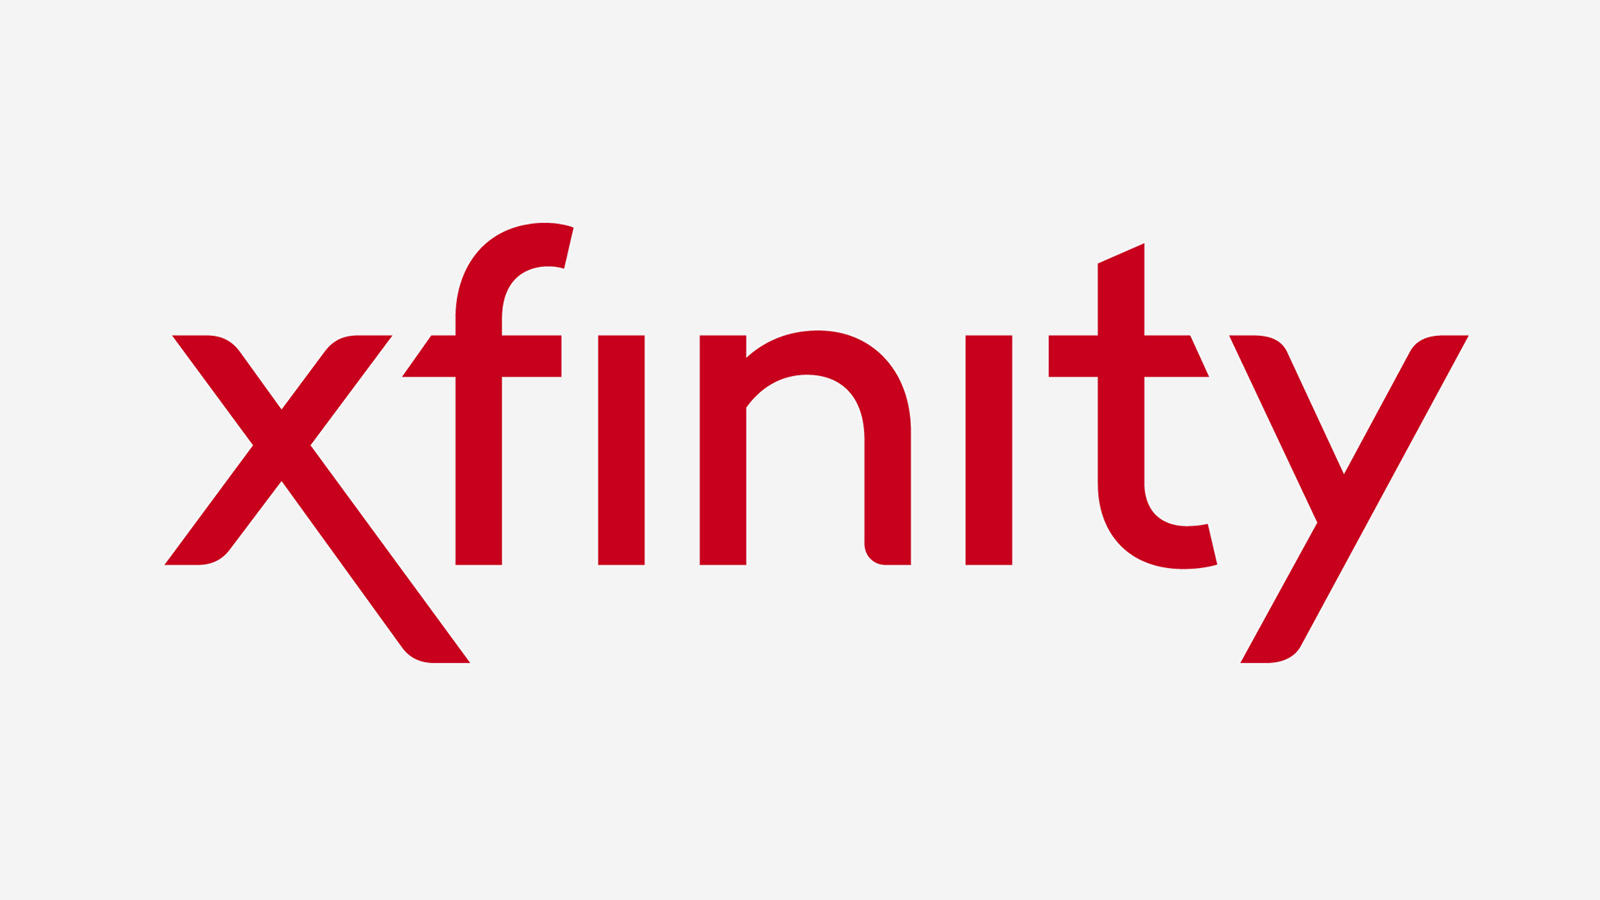 Xfinity How To Troubleshoot Comcast Xfinity Email Connectivity Problem